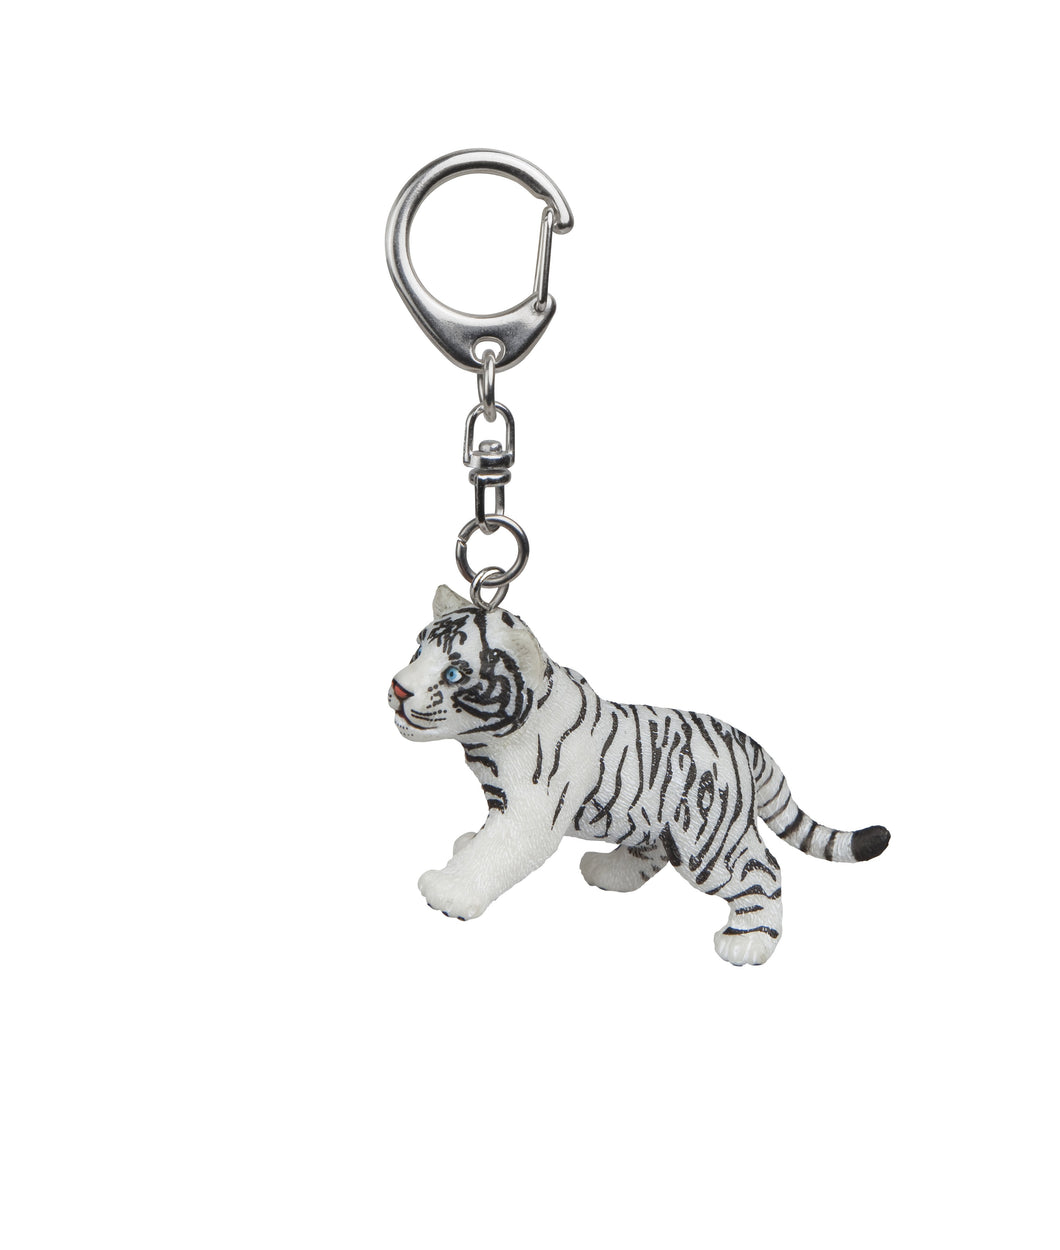 Papo France Key Chains - White Tiger Cub